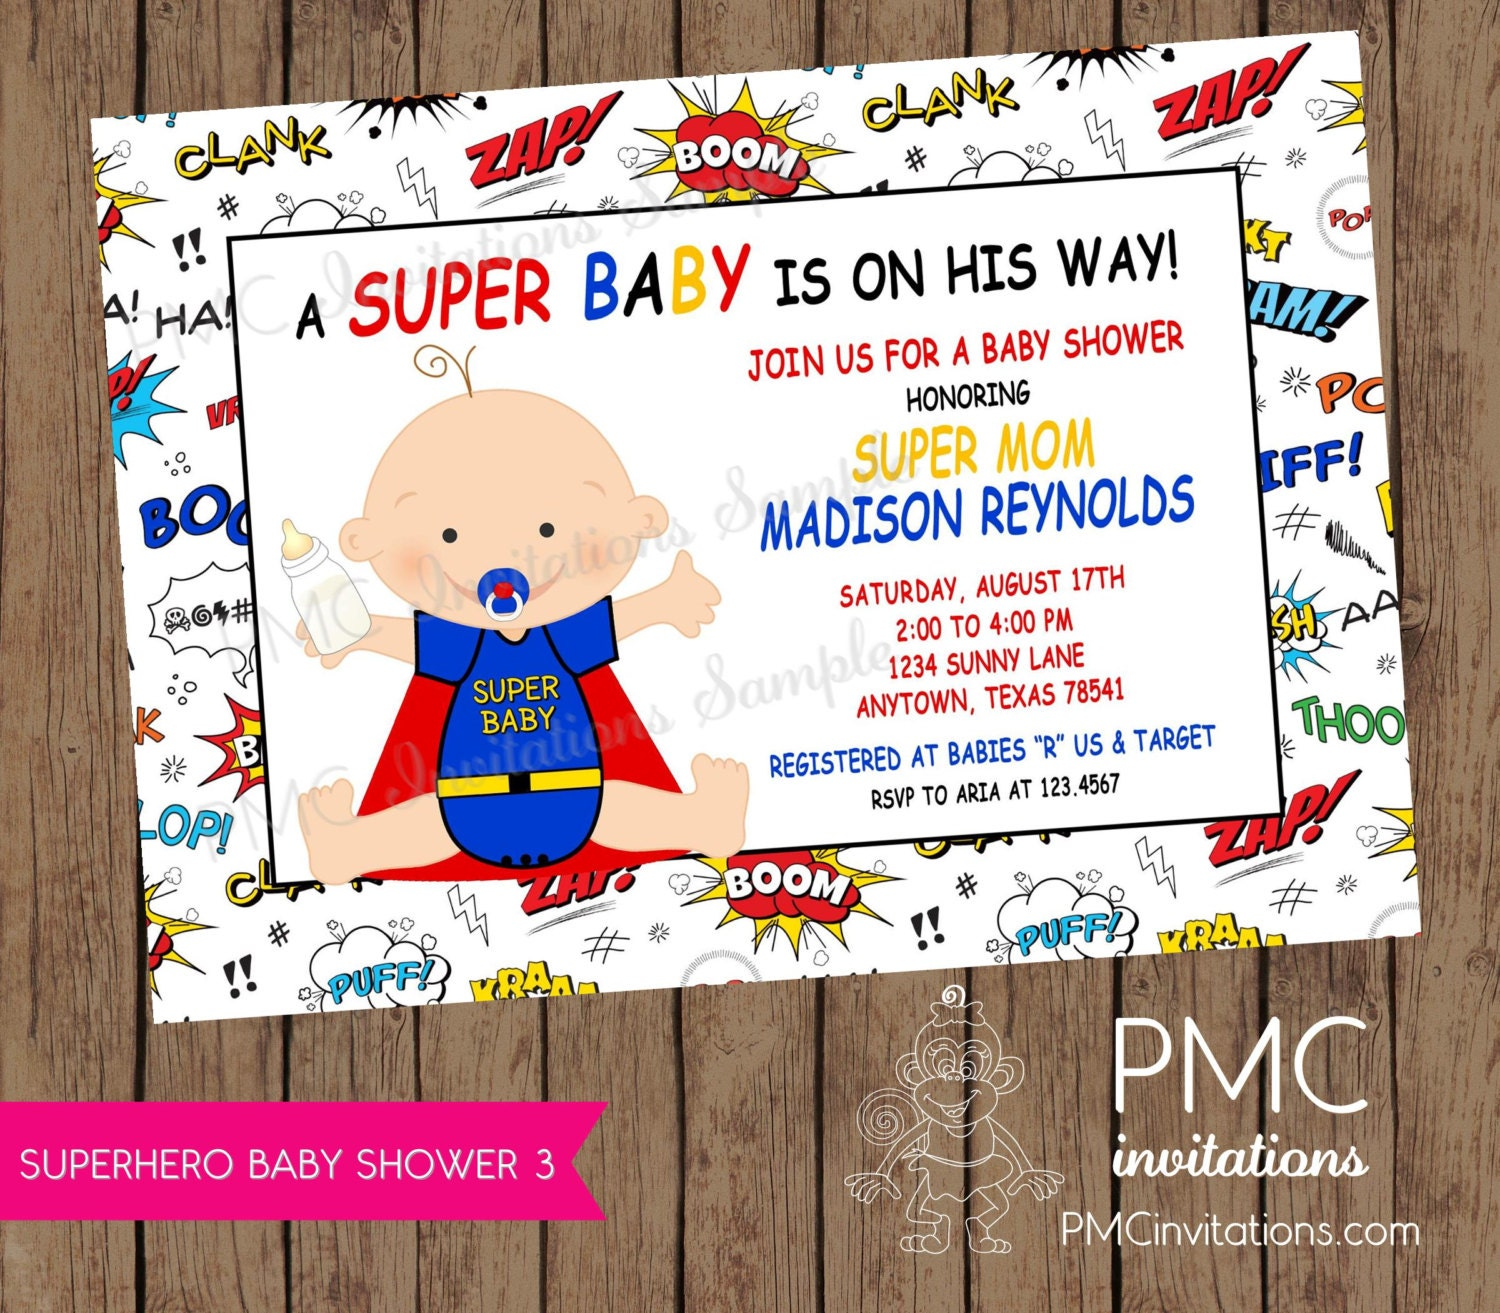 Superhero Baby Shower Invitations 1.00 each with envelopes